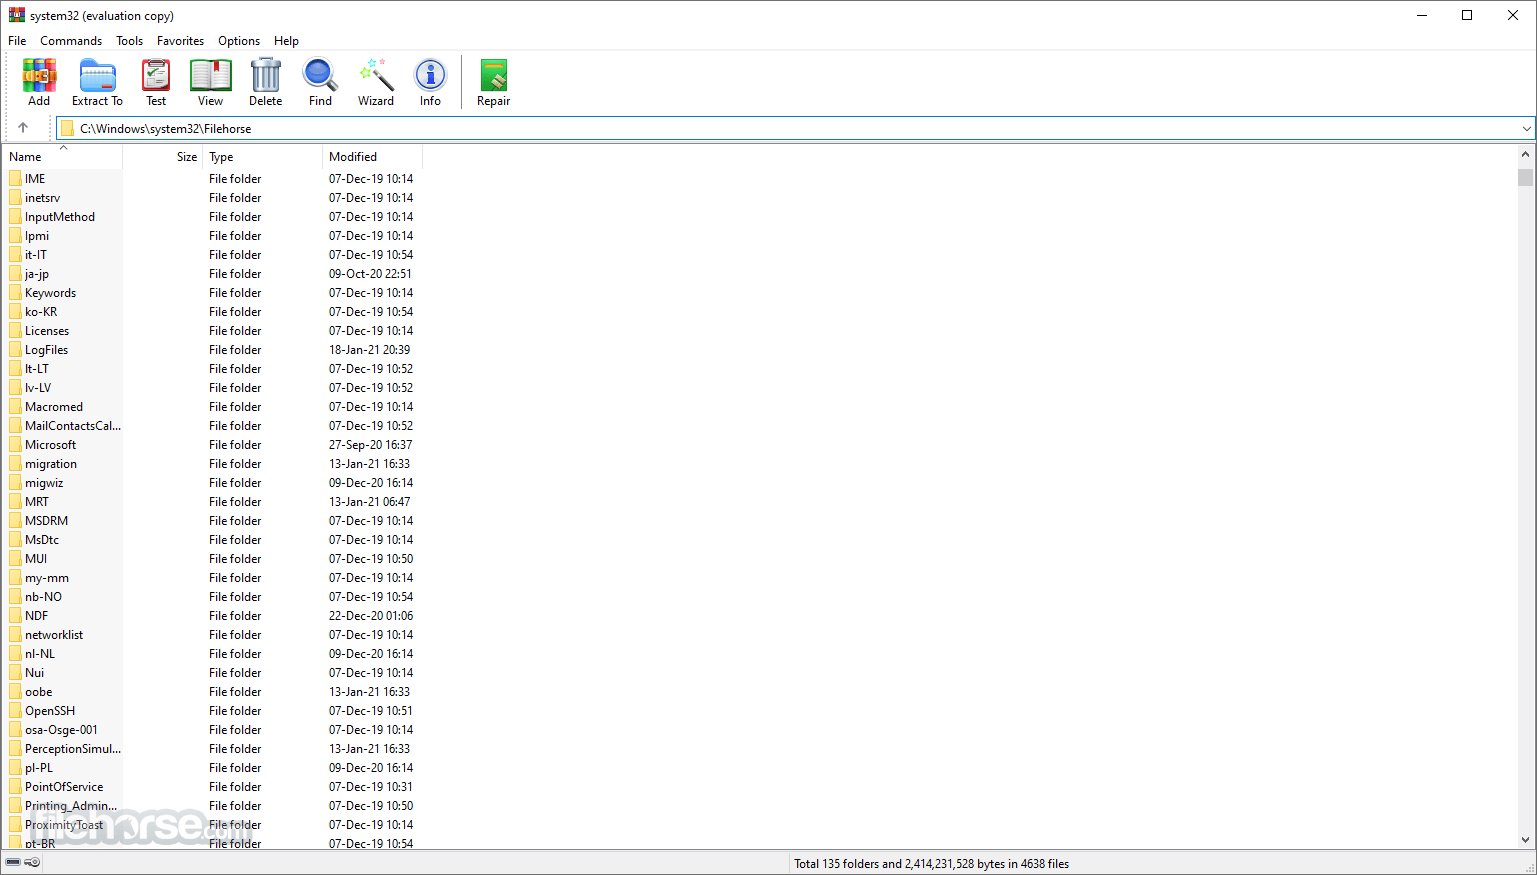 WinRAR 5.61 Beta 1 (32-bit) Screenshot 1